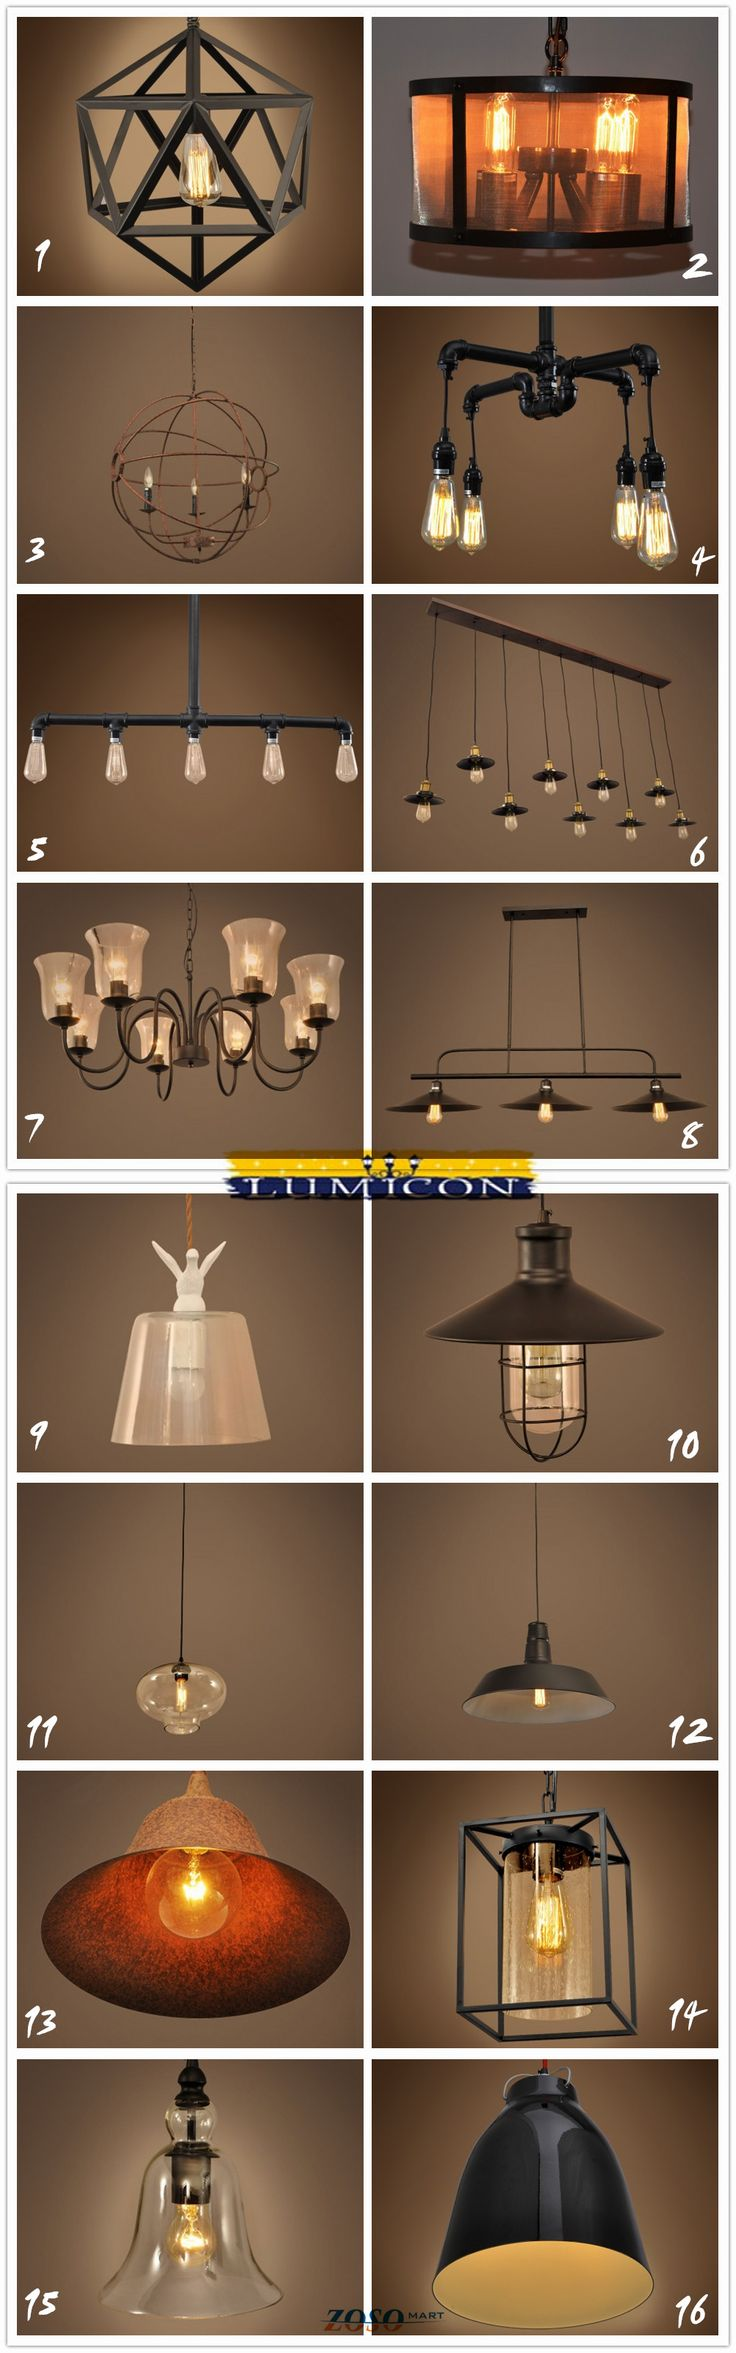 16 most popular lighting fixture. Which one is your favorate?  chandeliers, lamps, hanging lighting, pendant lights, industrial lighting, vintage lighting http://www.zosomart.com/home-living/lamps-lighting.html